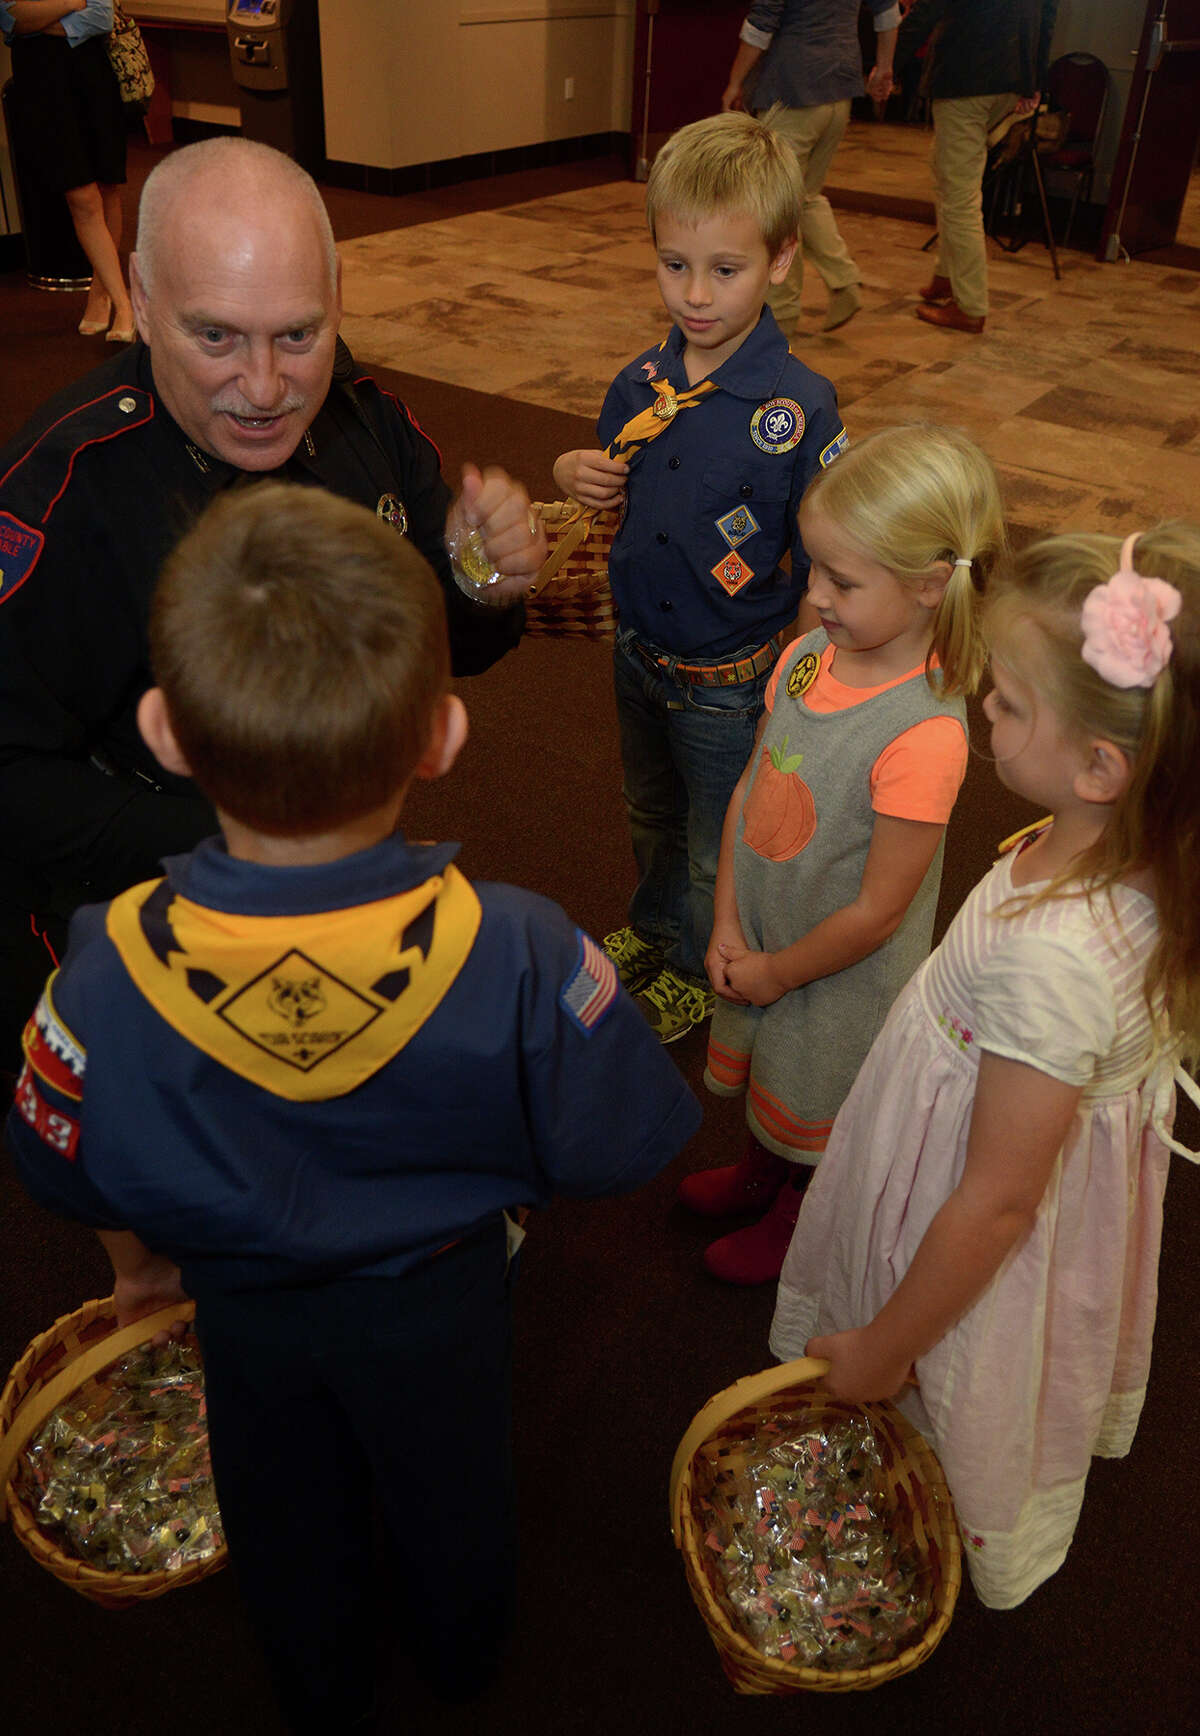 Harris County Pct. 4 Deputy Ken Perry, clockwise from top left, presents pins to Cub Scout Pack 1387 member Paul Marencic, 7, Elise Marencic, 4, Scarlett Clark, 4, and Cub Scout Pack 1387 member Graham Clark, 7, making them honorary Sherrif Deputies after they passed out American flag pins to guests at the Tribute to Veterans event at The Humble Civic Center on Nov. 9, 2016. (Photo by Jerry Baker/Freelance)